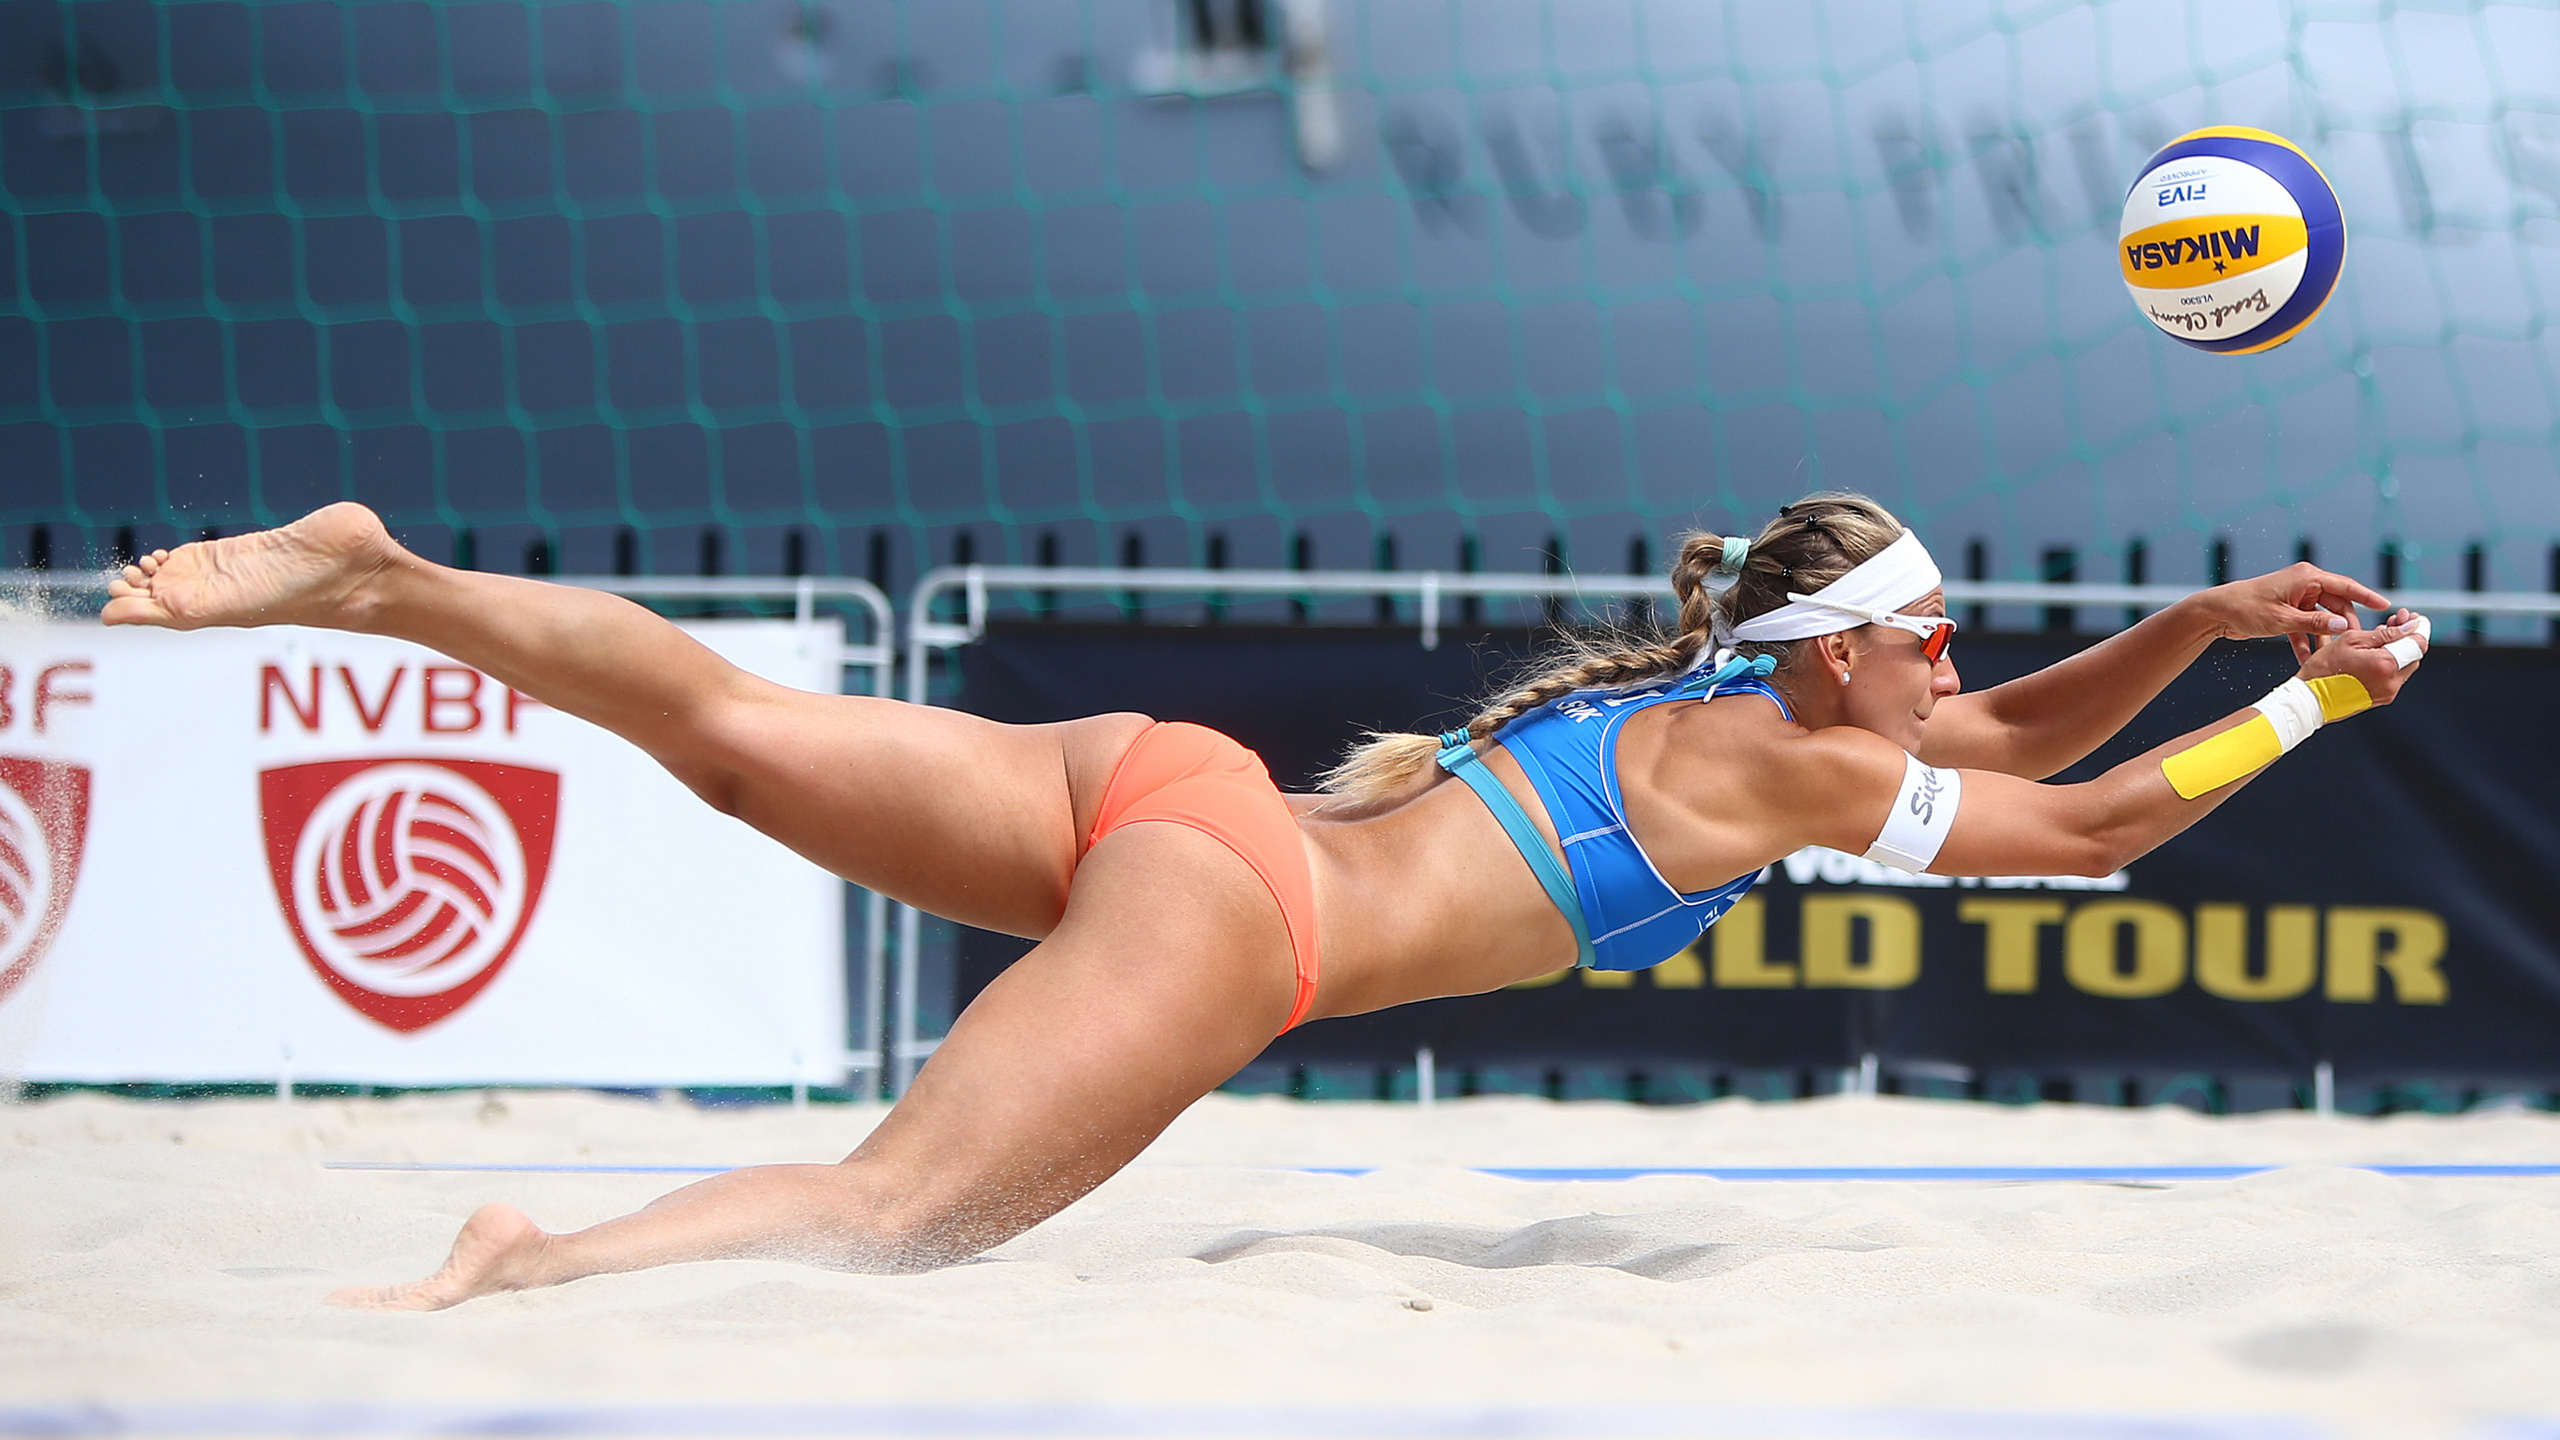 Funny Volleyball Pictures